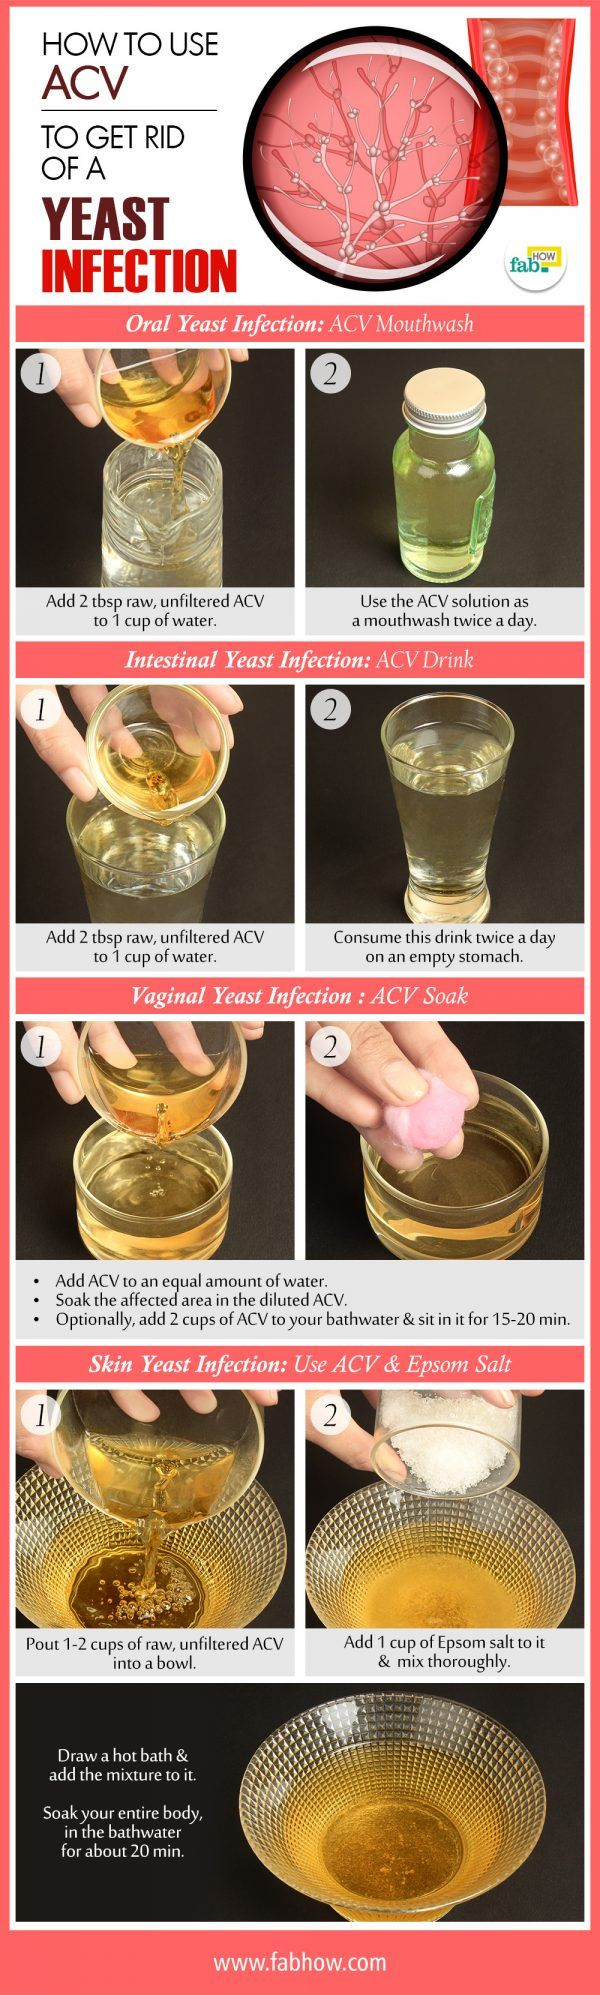 acv for yeast infection